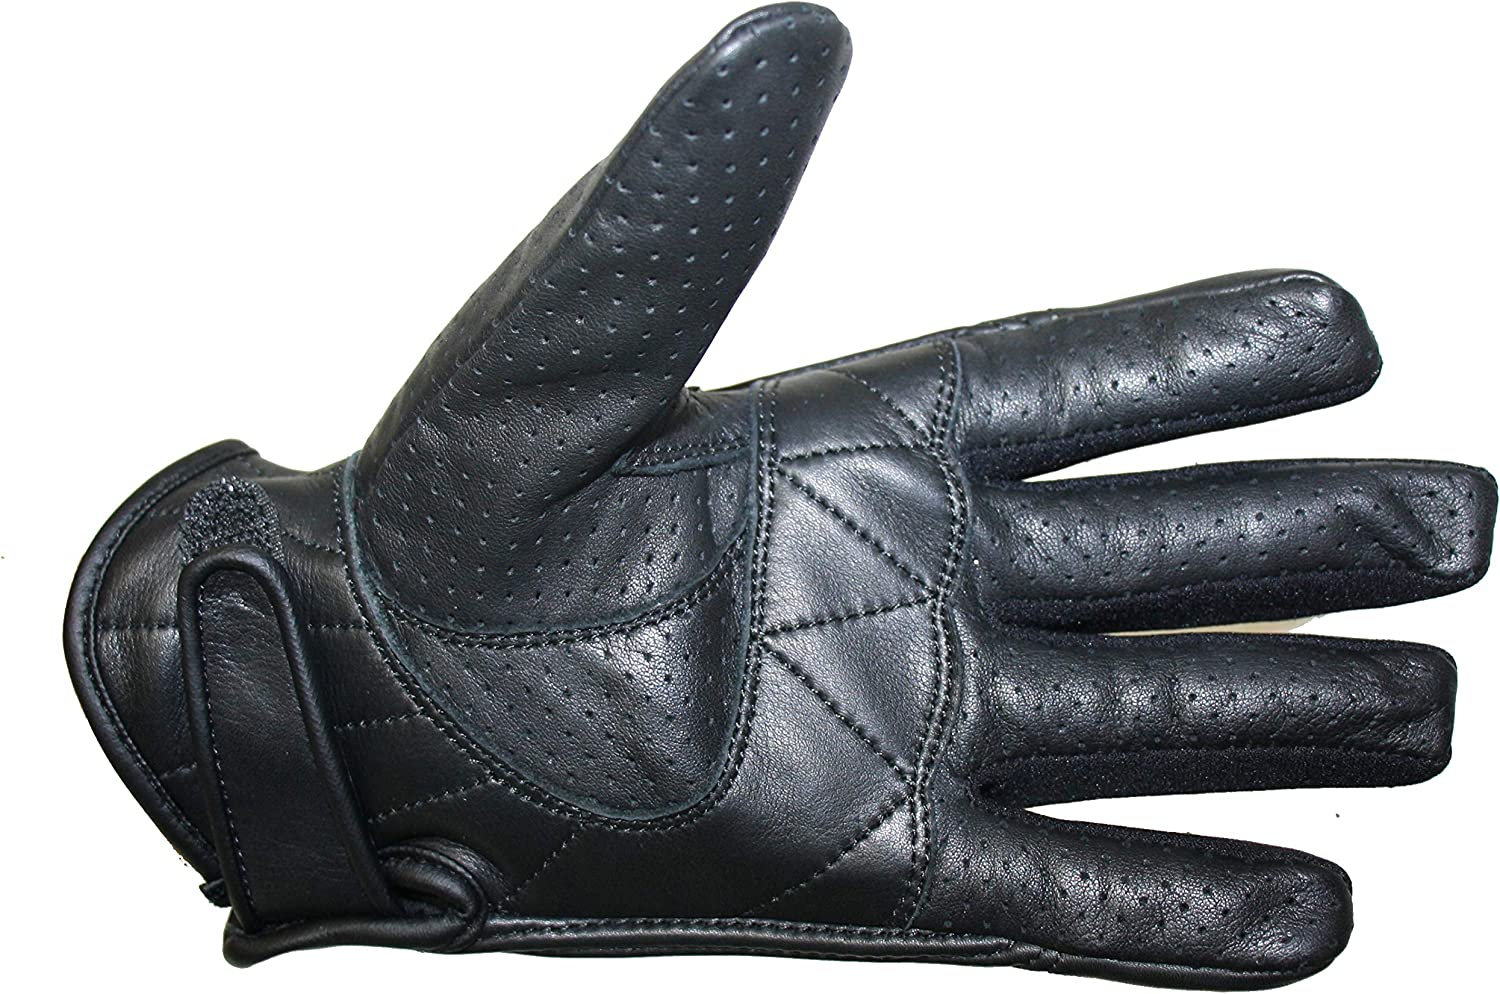 Black Bikers Gear Australia Short Soft Leather Summer Perforated Motorcycle Gloves Size XS